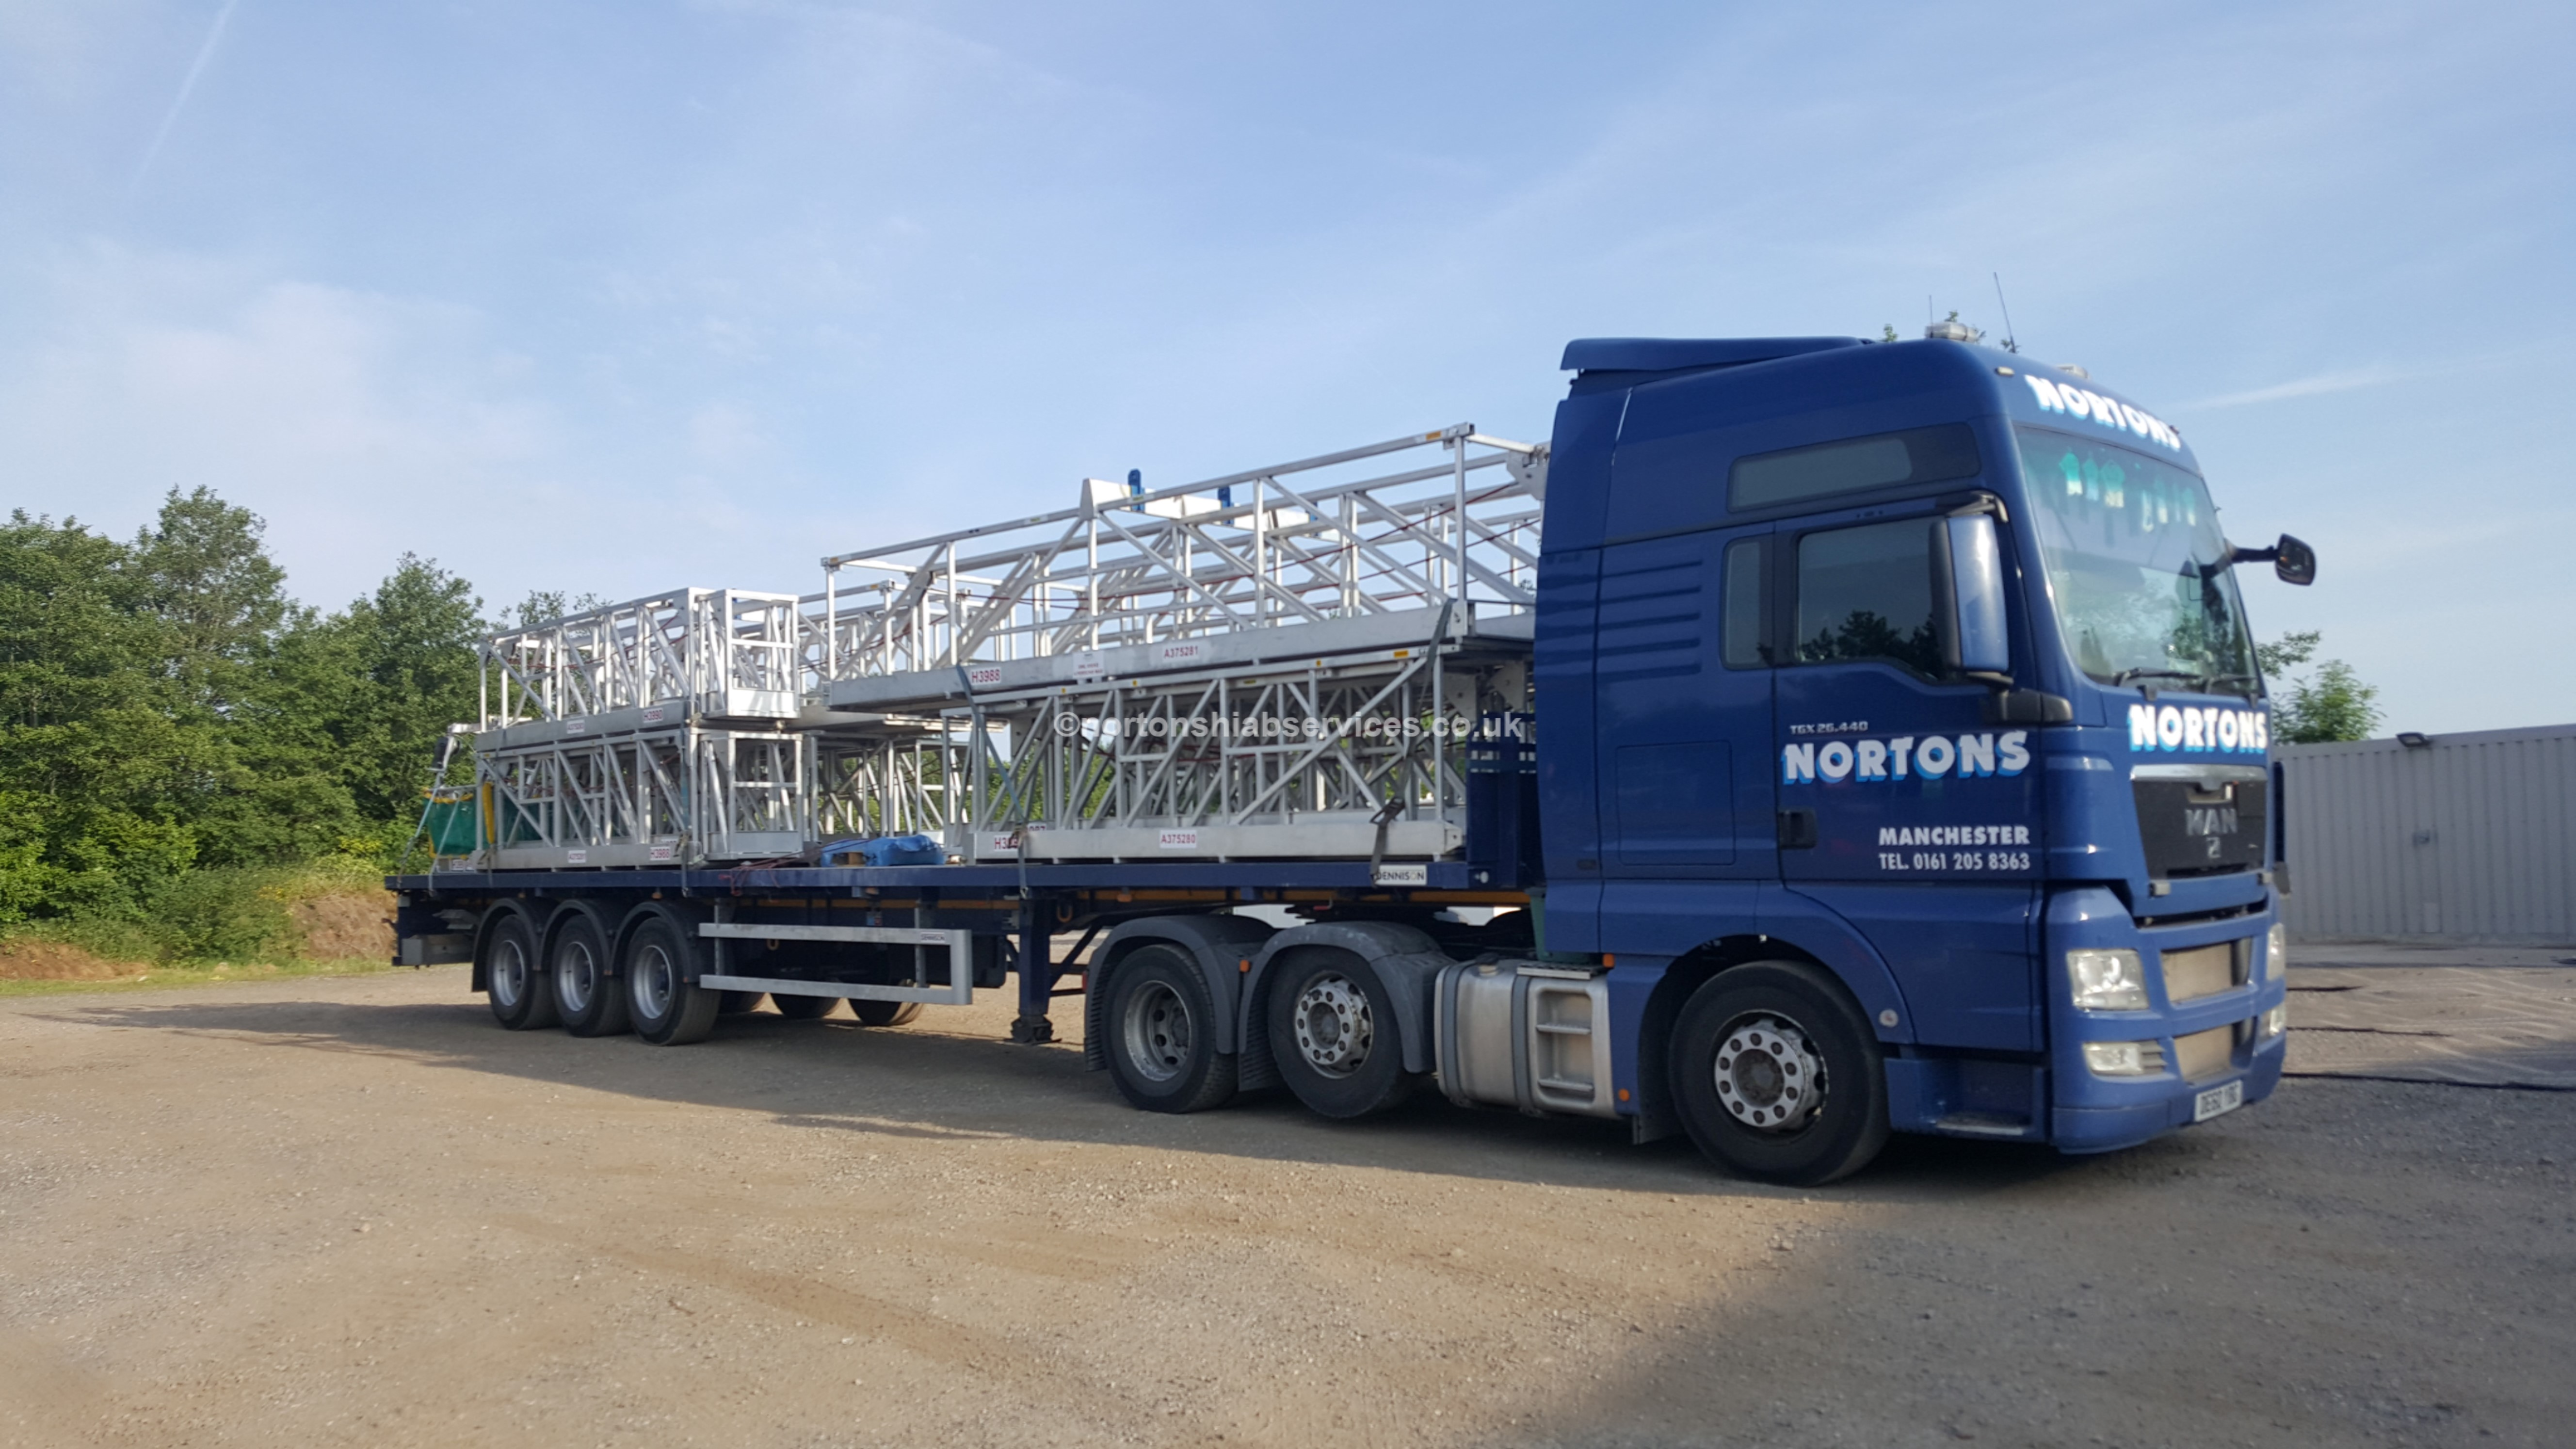 Access platform move from Durham to Manchester